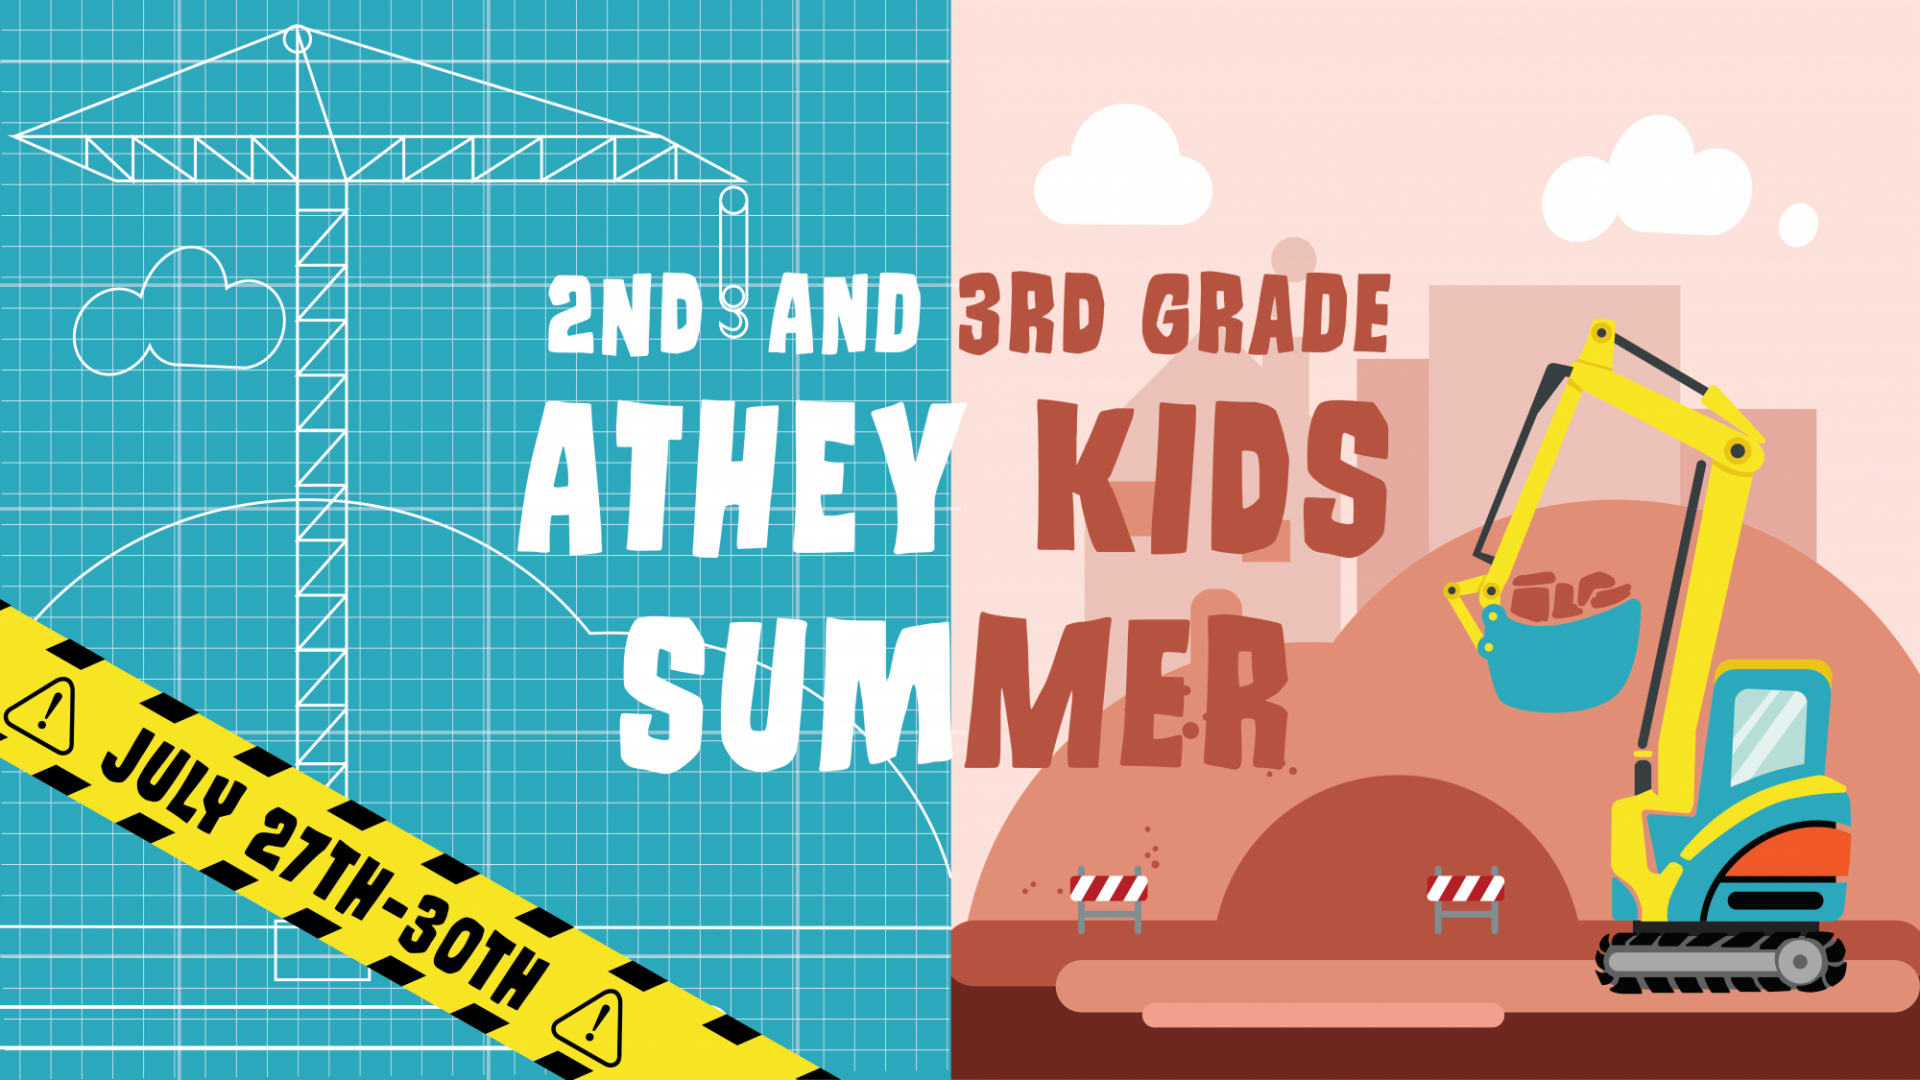 Poster for Athey Kids Summer 2nd and 3rd grade